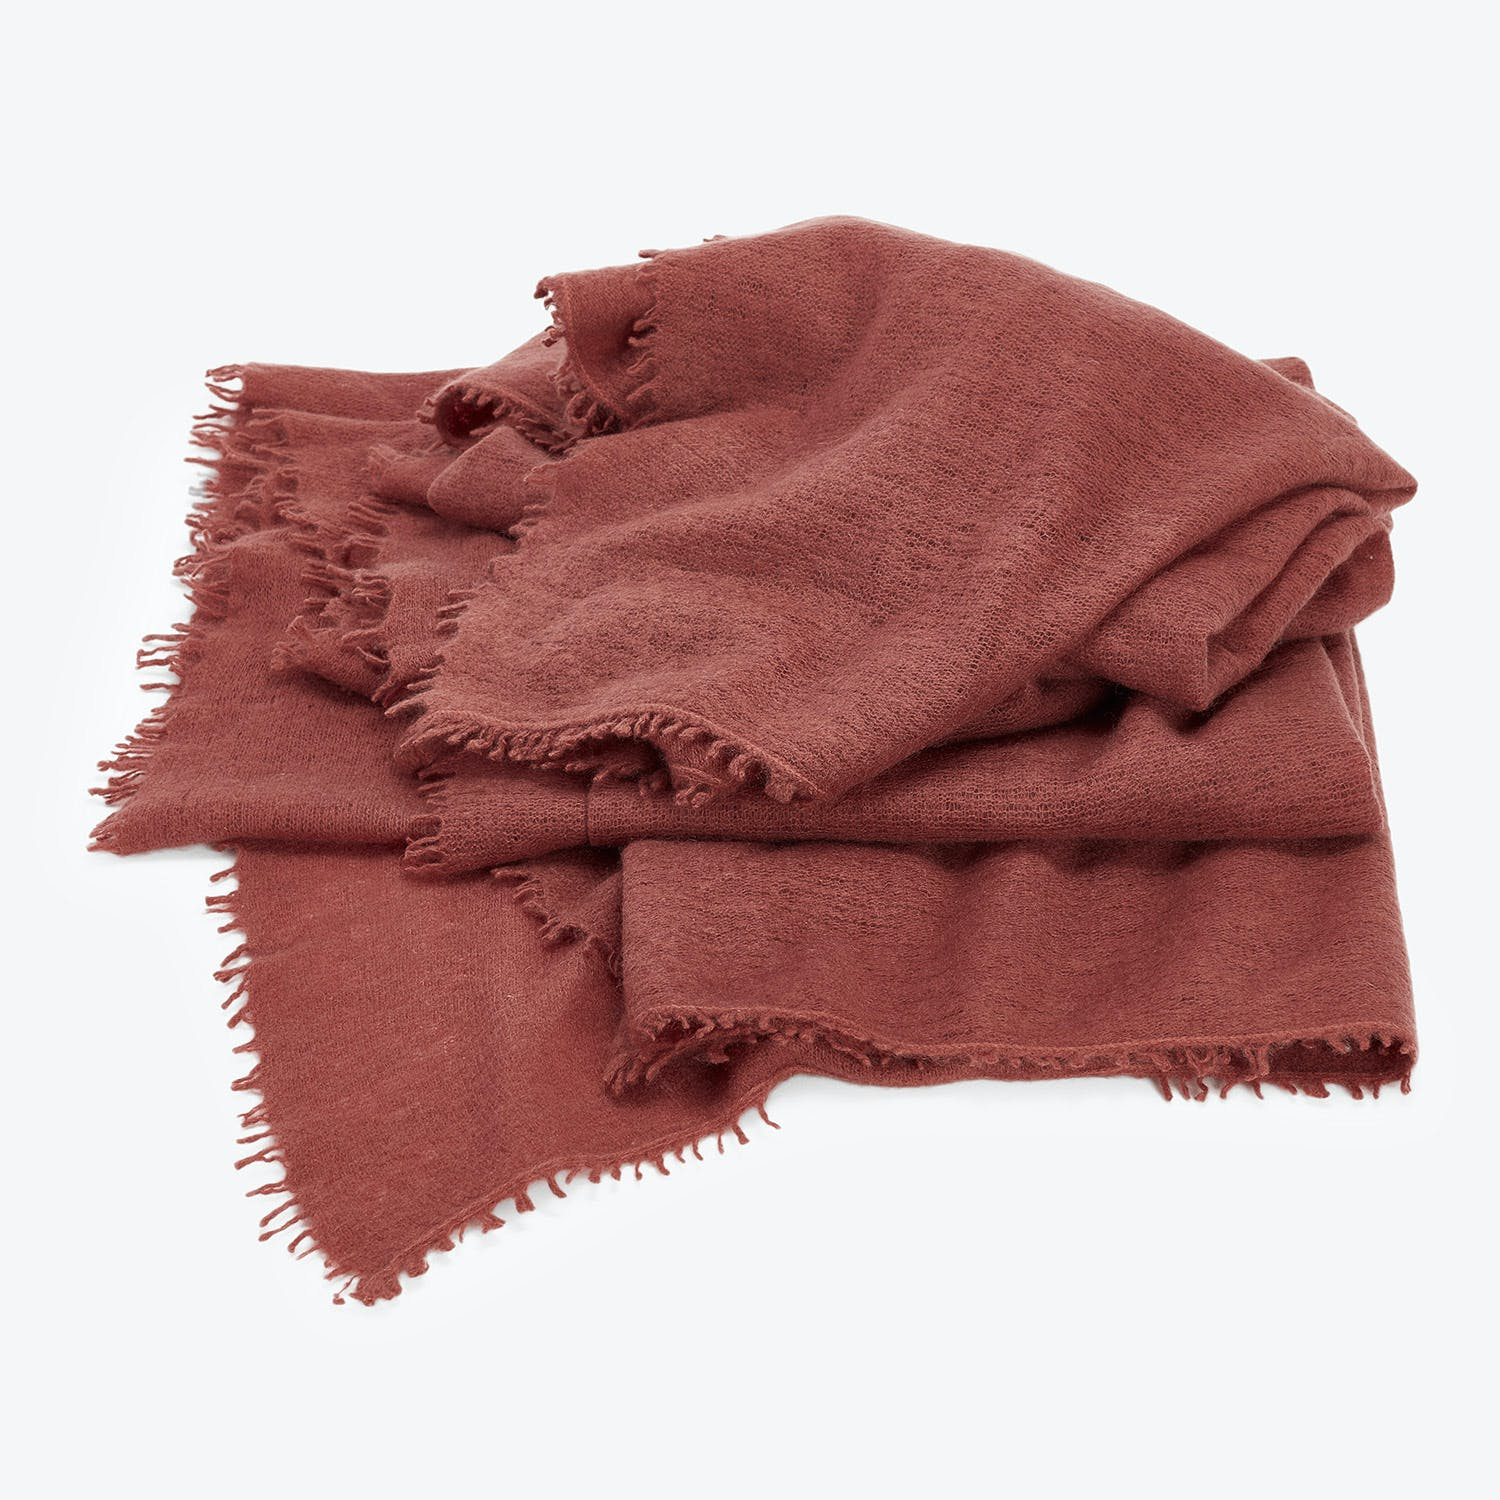 abcDNA Om Cashmere Throw Rich Brown